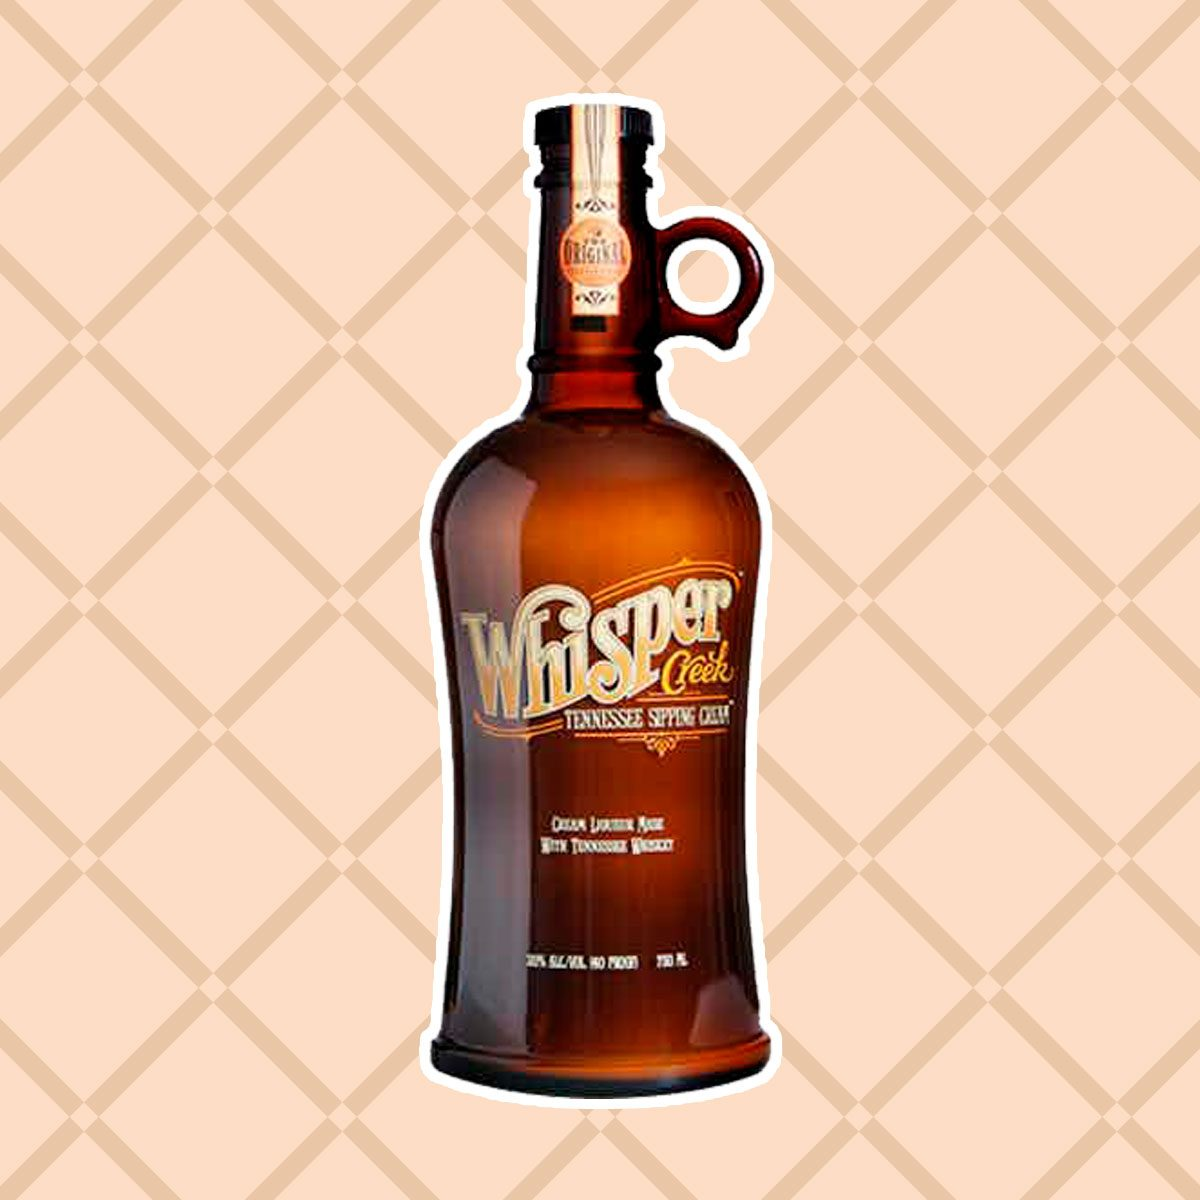 Whisper Creek Peanut Butter Chocolate Cream Liqueur